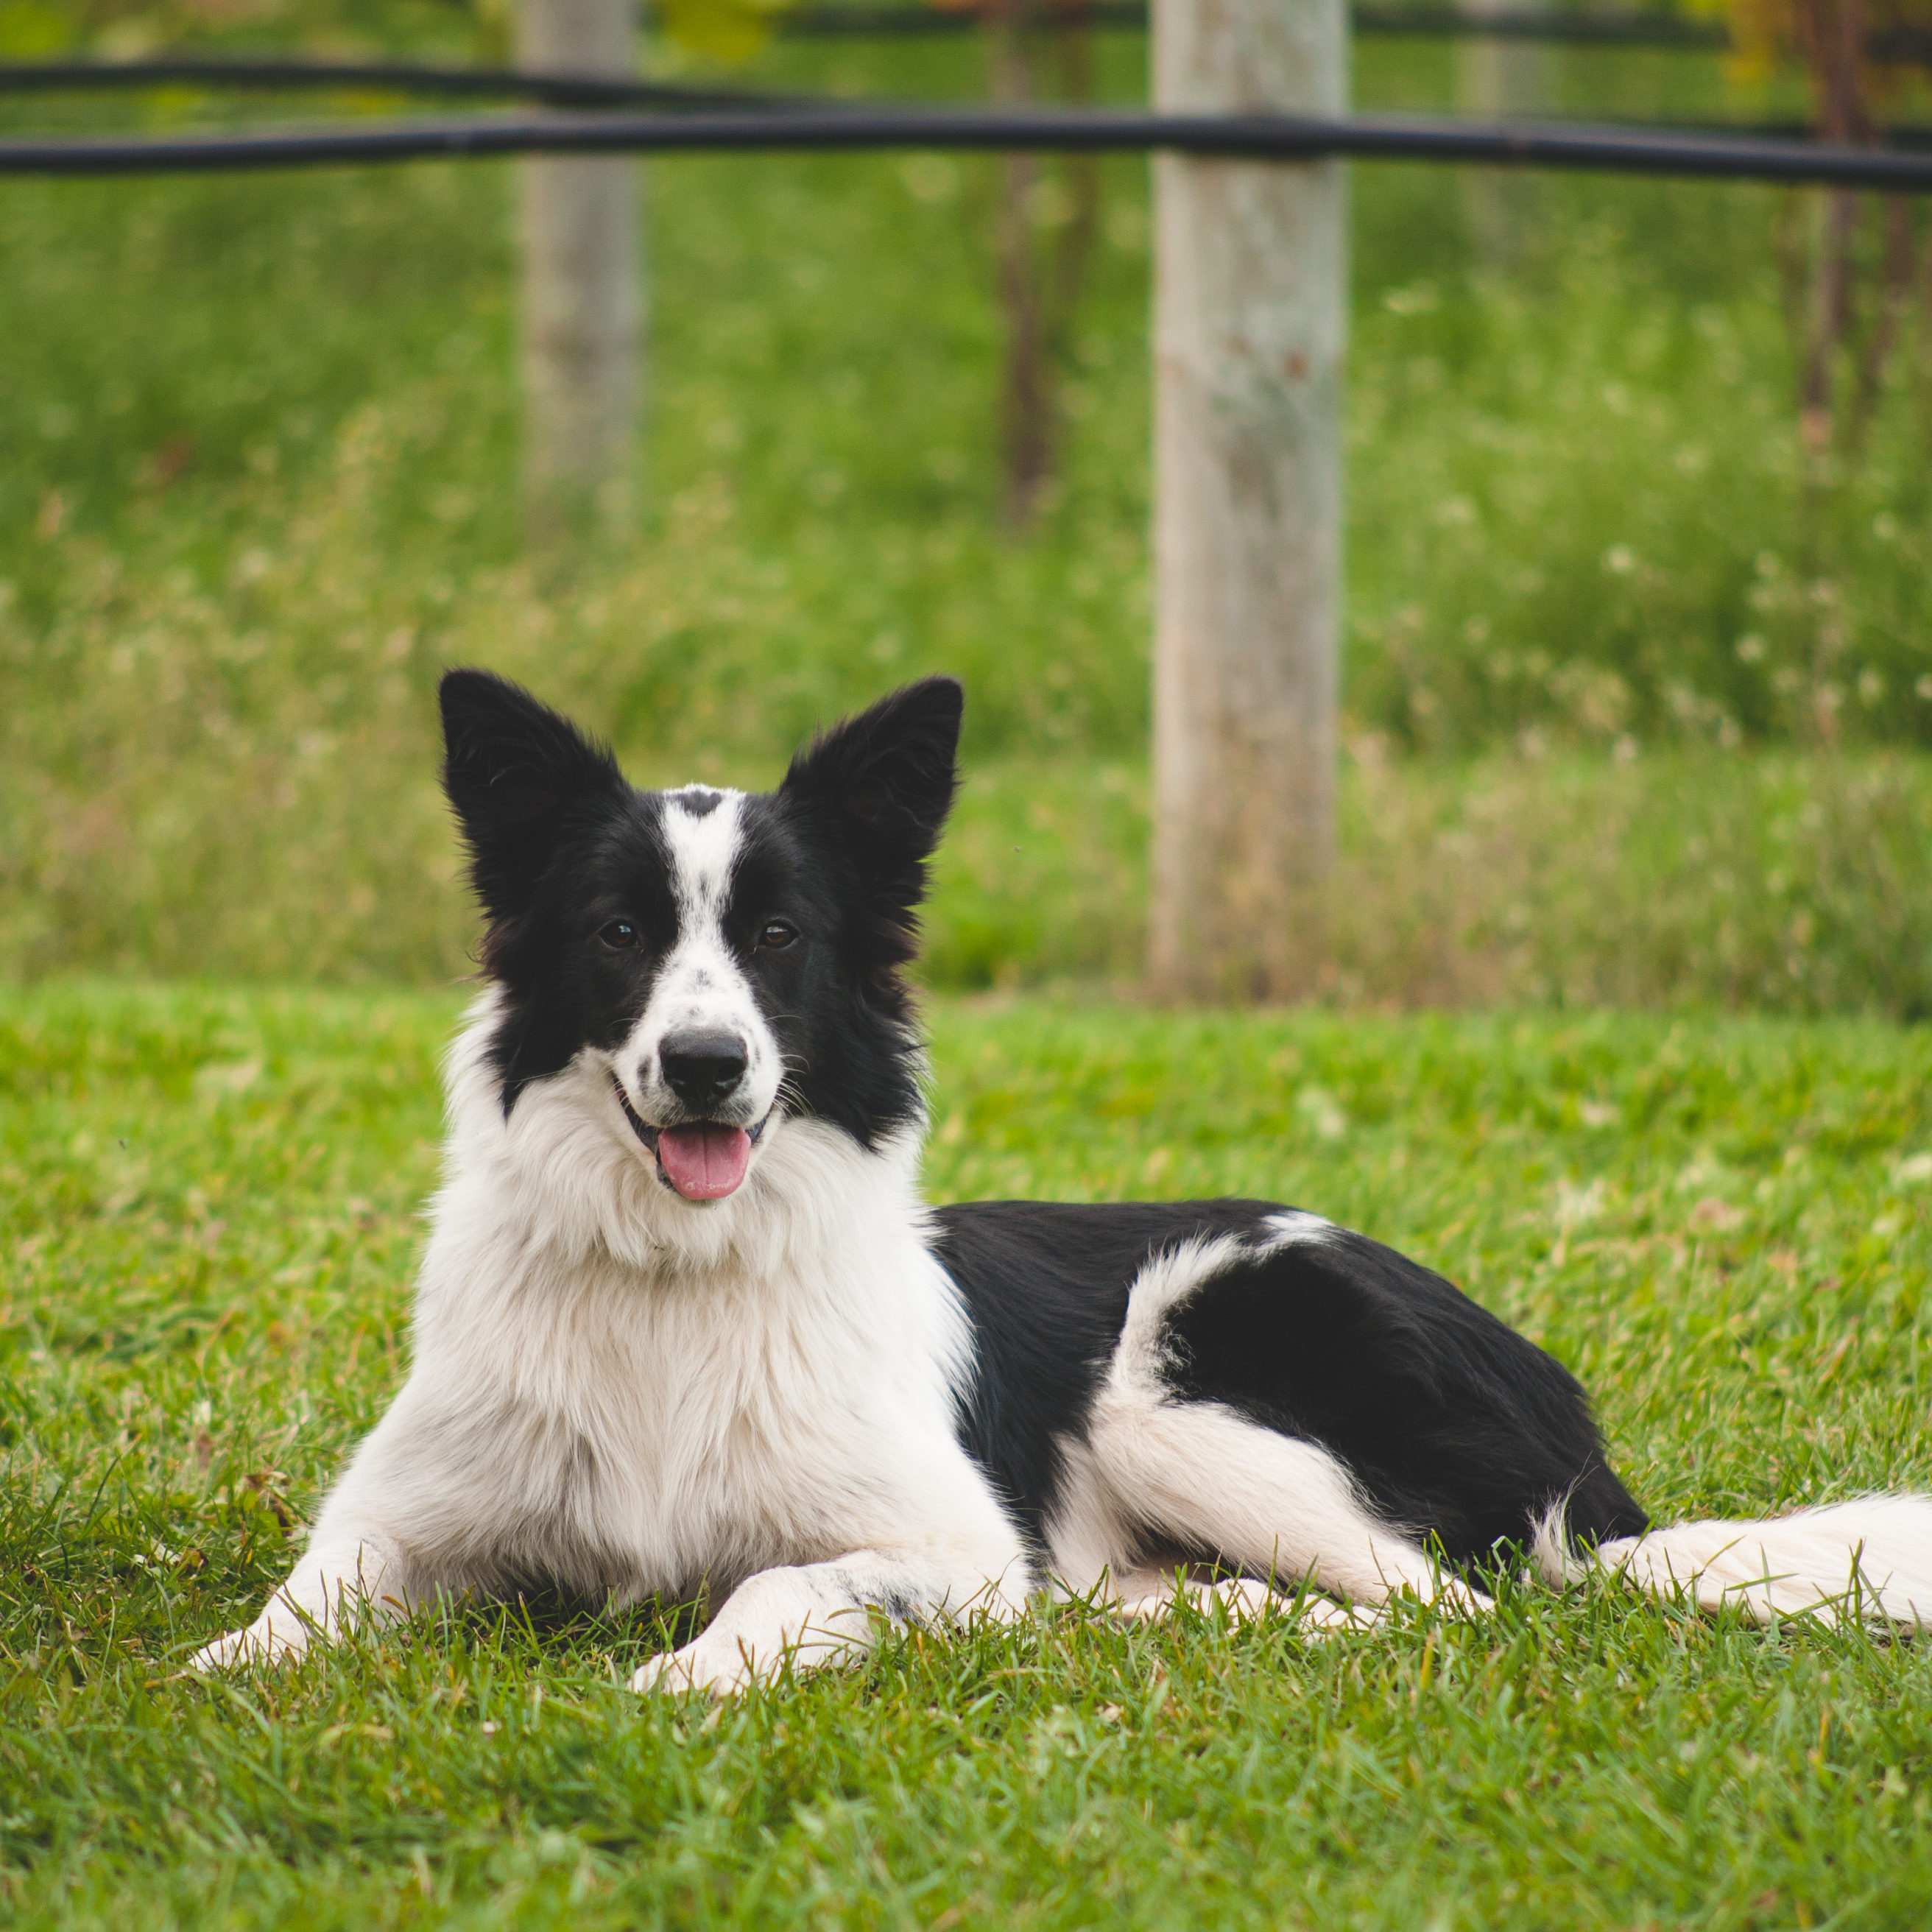 Kera, one of our Vineyard dogs, on alert, watching over the vineyard!